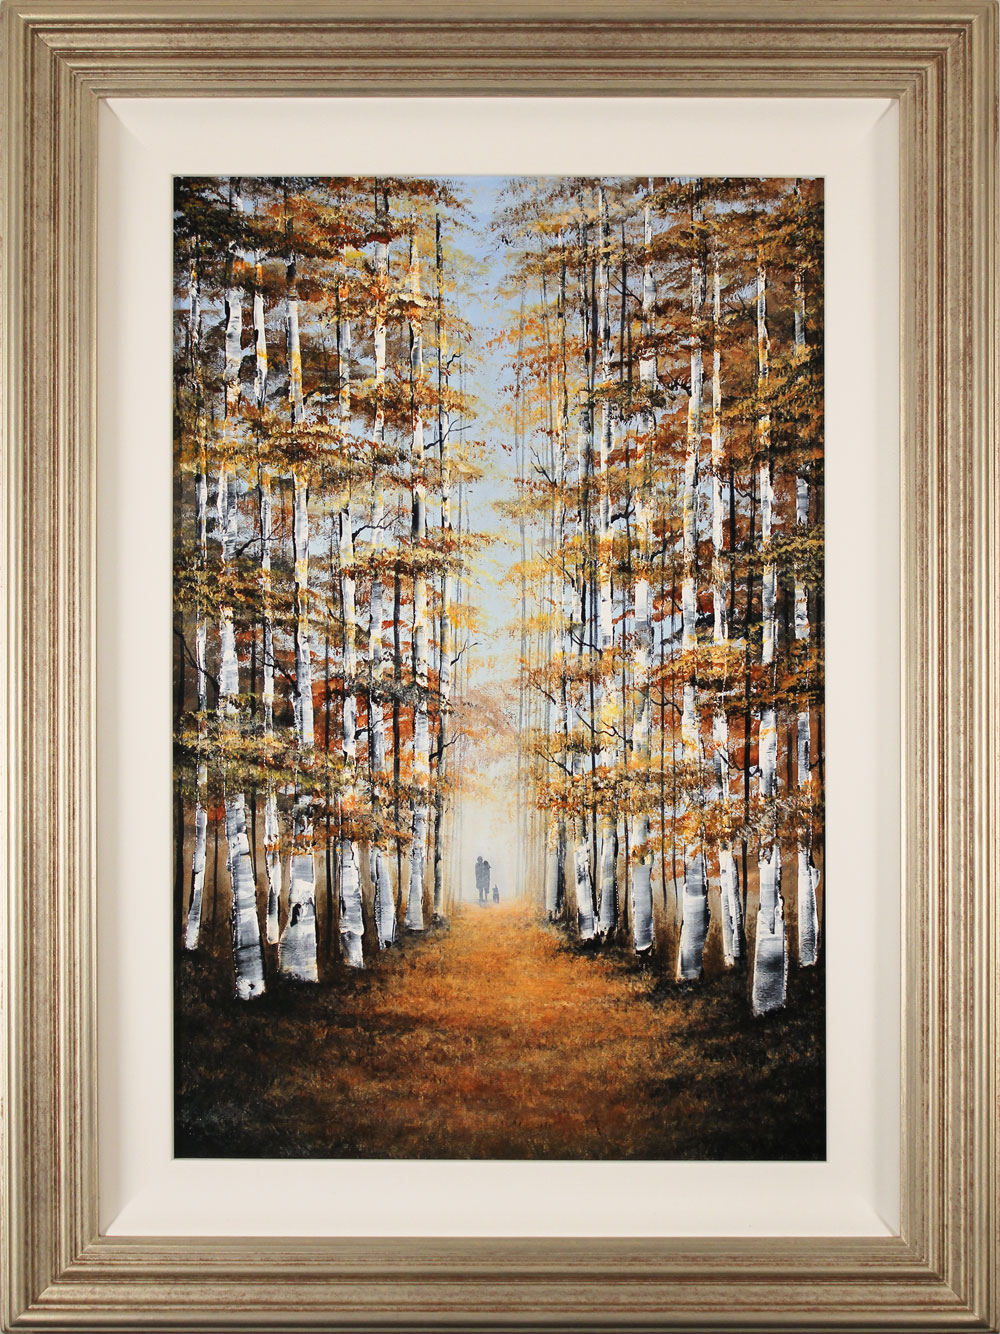 Jay Nottingham, Original oil painting on panel, Autumn Canopy Click to enlarge